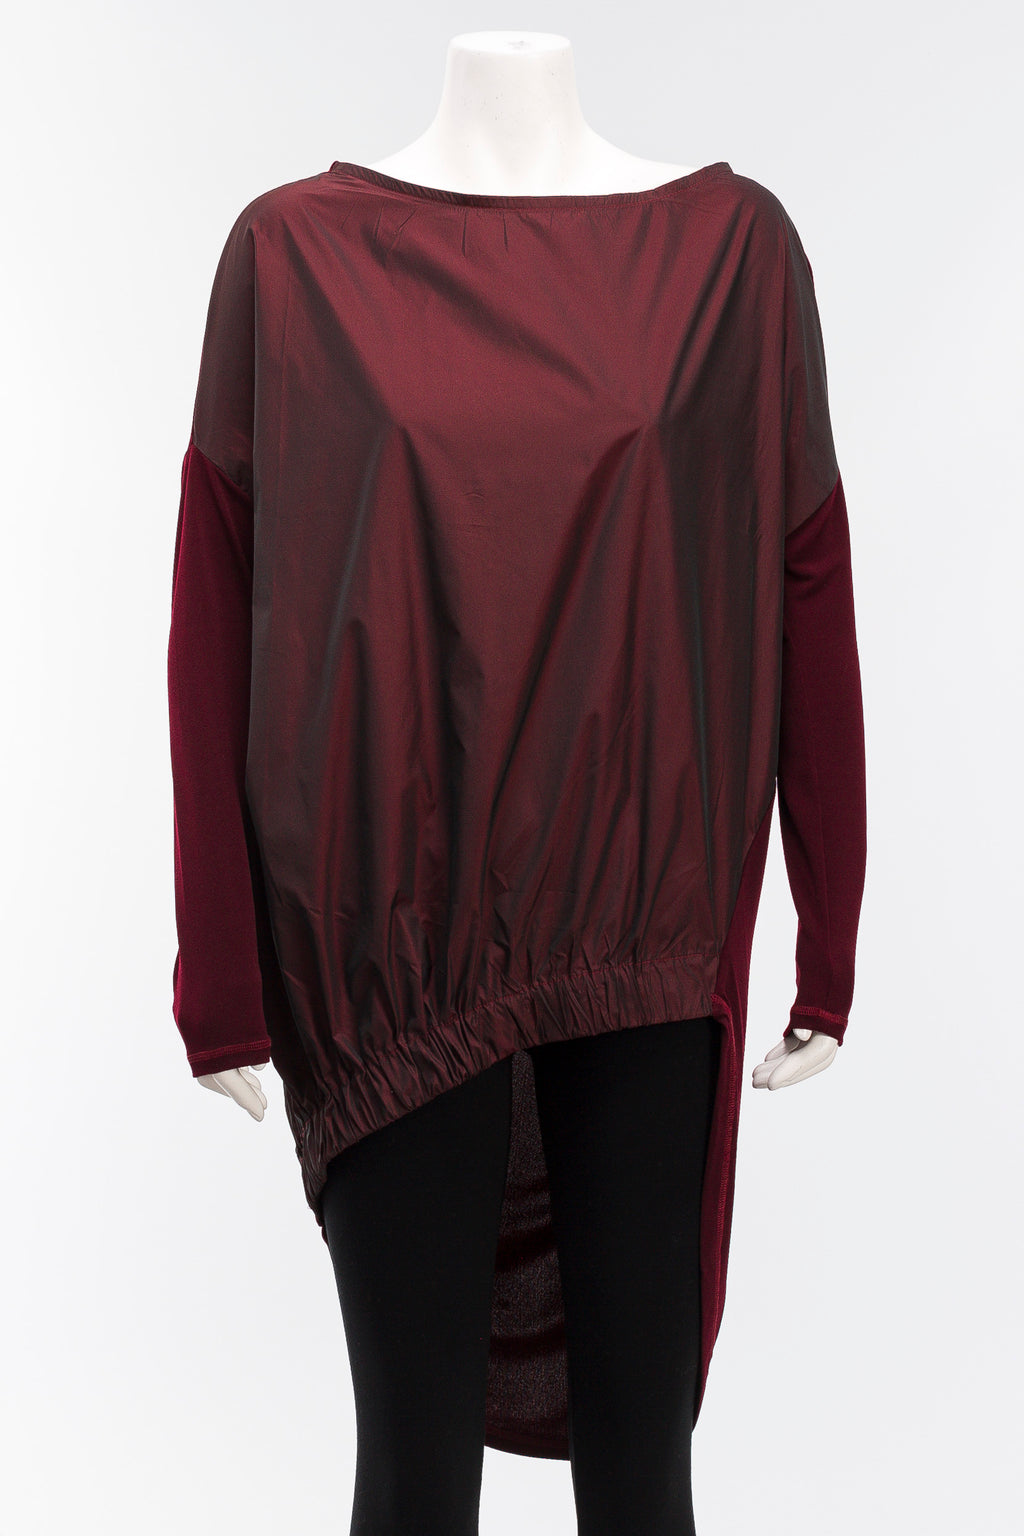 Taffeta Combo Tunic in Burgundy